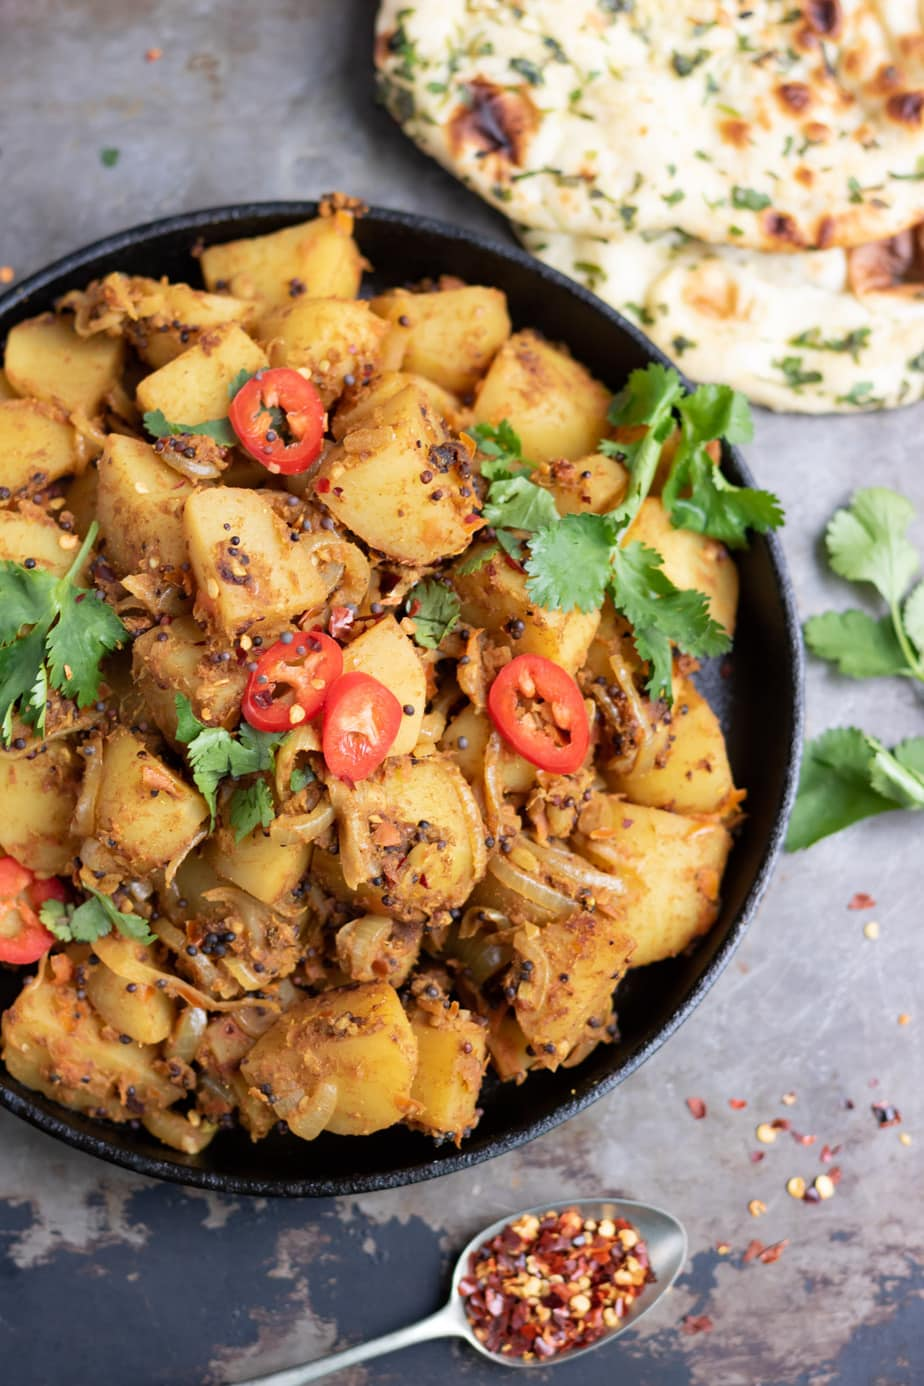 Close up of a dish of Bombay Potatoes with naan and a teaspoon of chilli flakes.